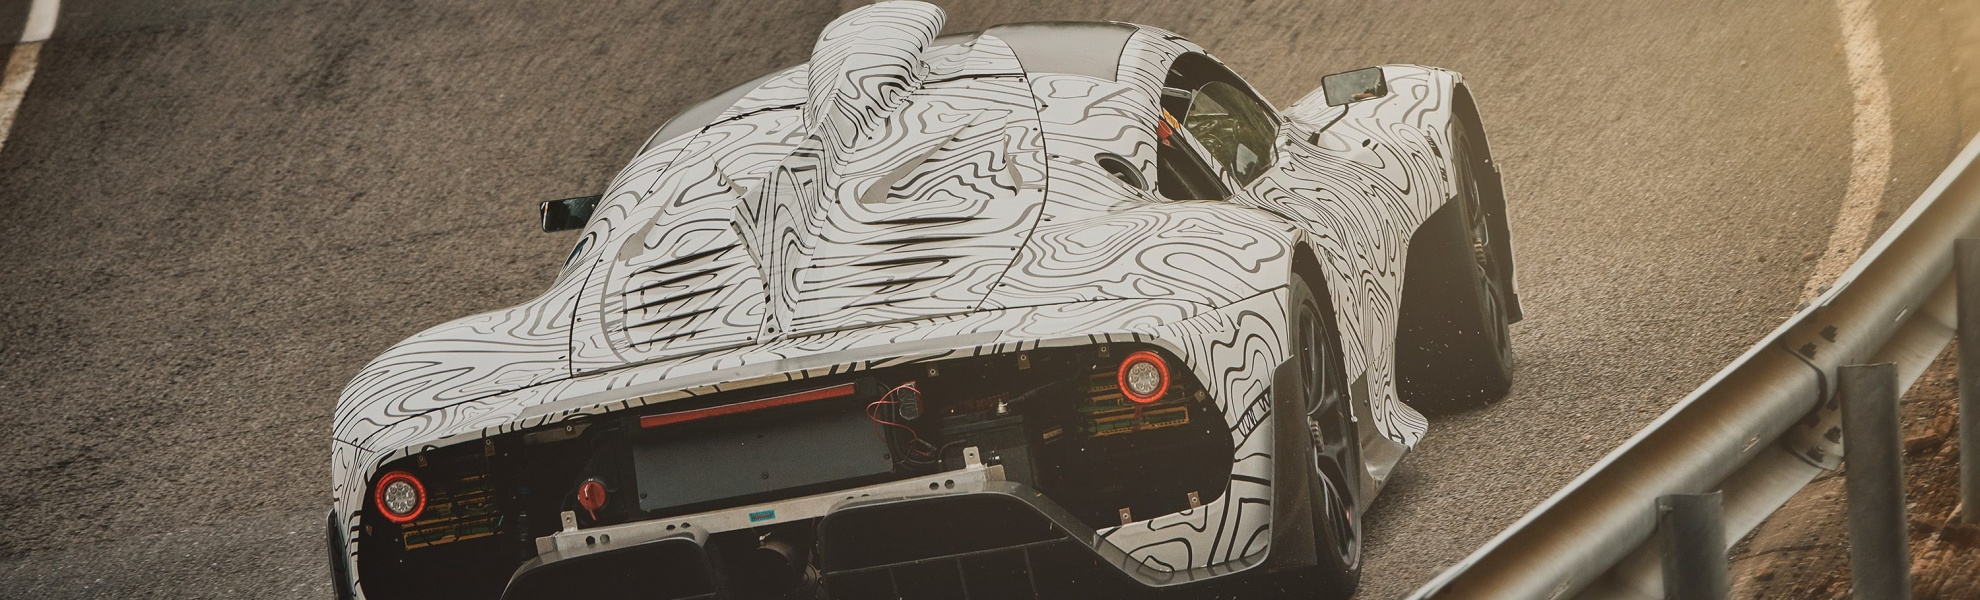 mercedes_amg_project_one_testes_2.jpg